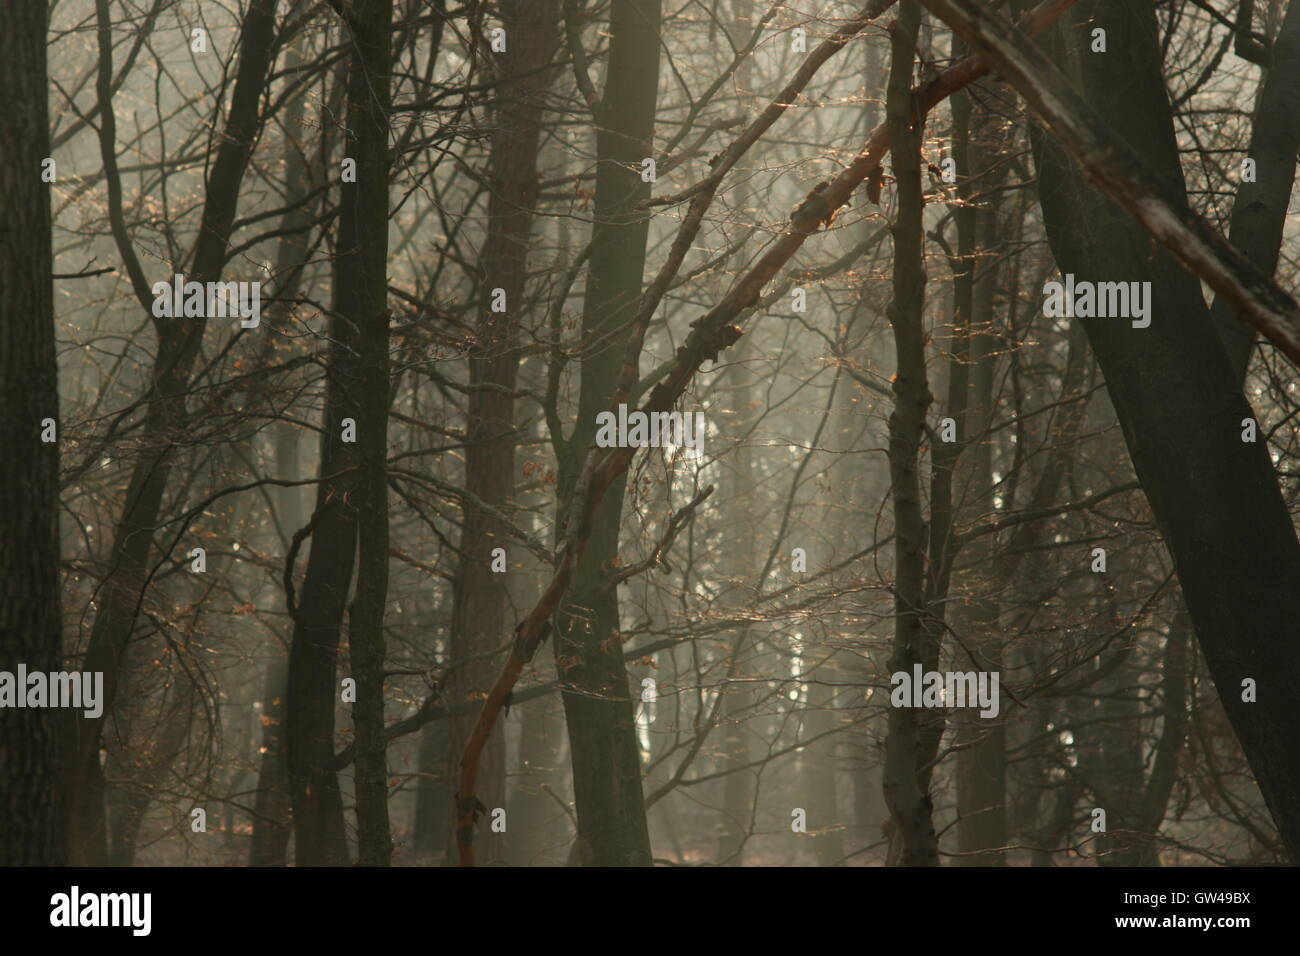 In the winter, murky Belgian woodland in a cold desolate forest of oak, birch and coniferous evergreen. - Stock Image